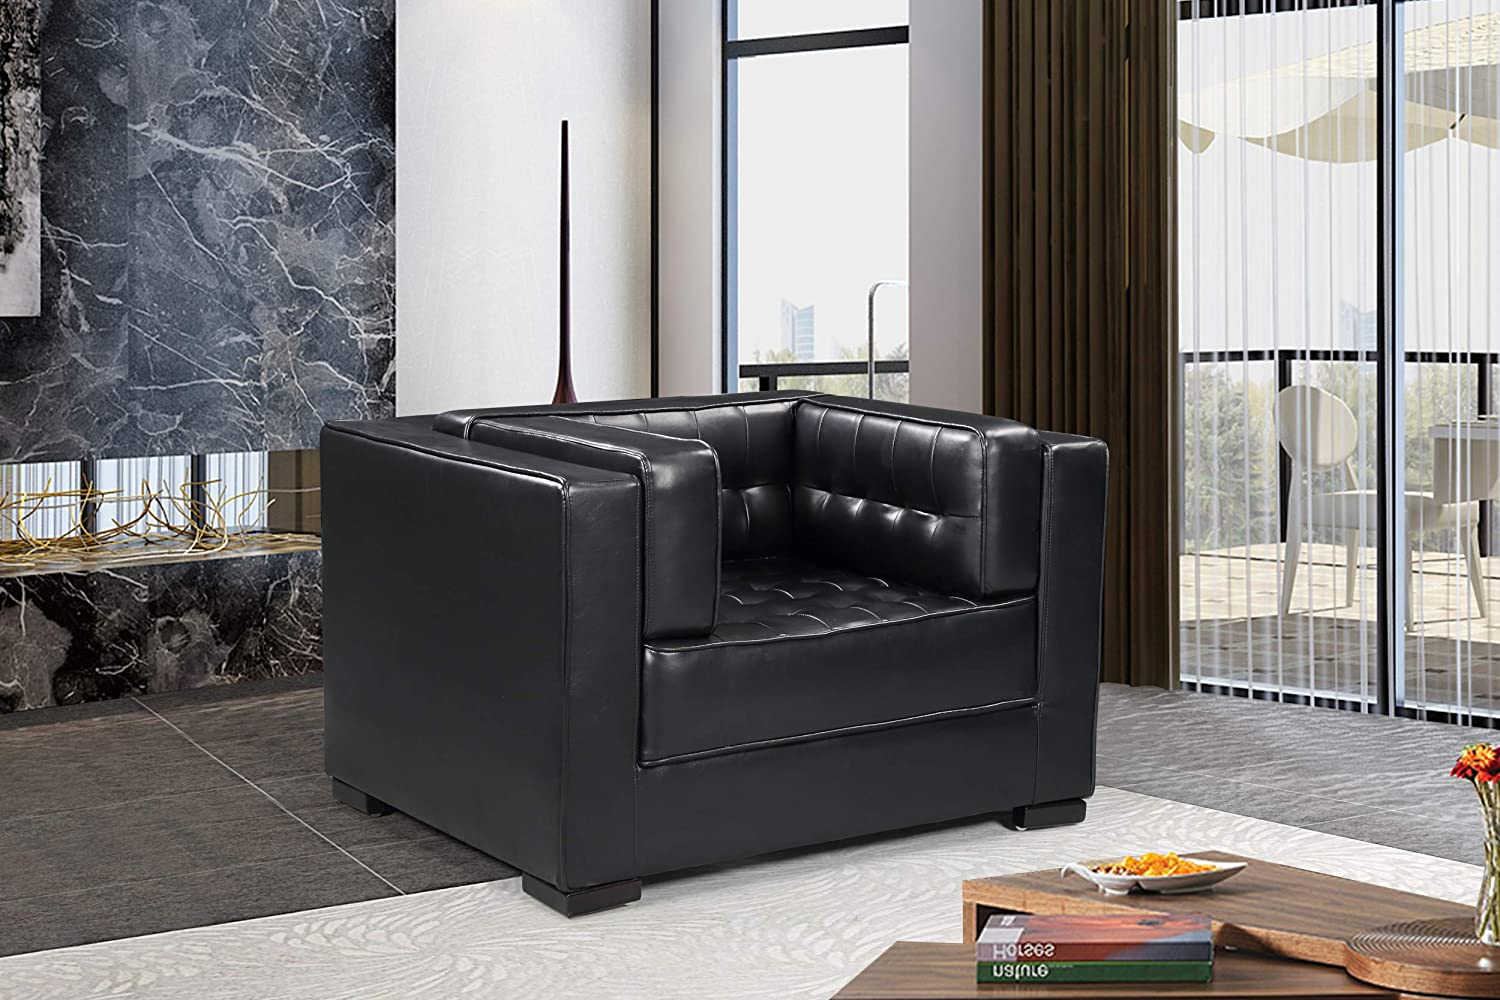 Iconic Home Lorenzo Accent Club Chair PU Leather Upholstered Tufted Shelter Arm Design Espresso Finished Wood Legs Modern Transitional, Black